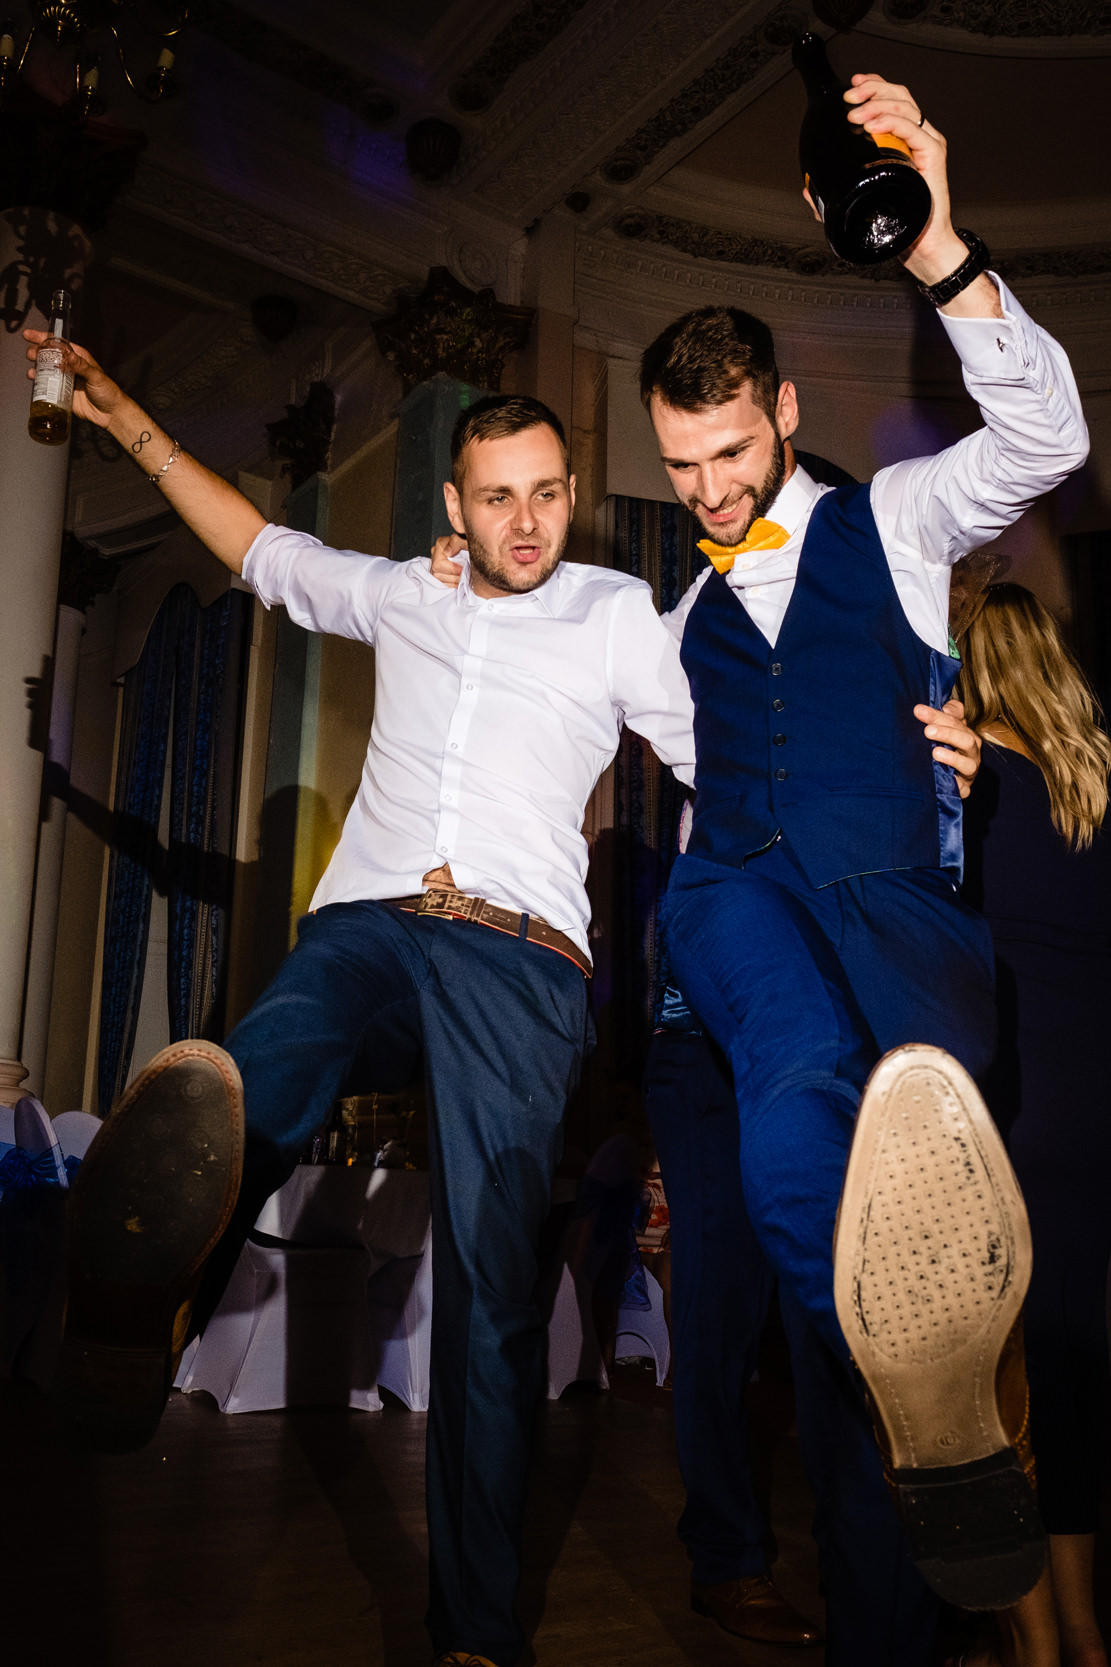 groom dancing with groomsman. grand hotel scarborough wedding photography by emma and rich.